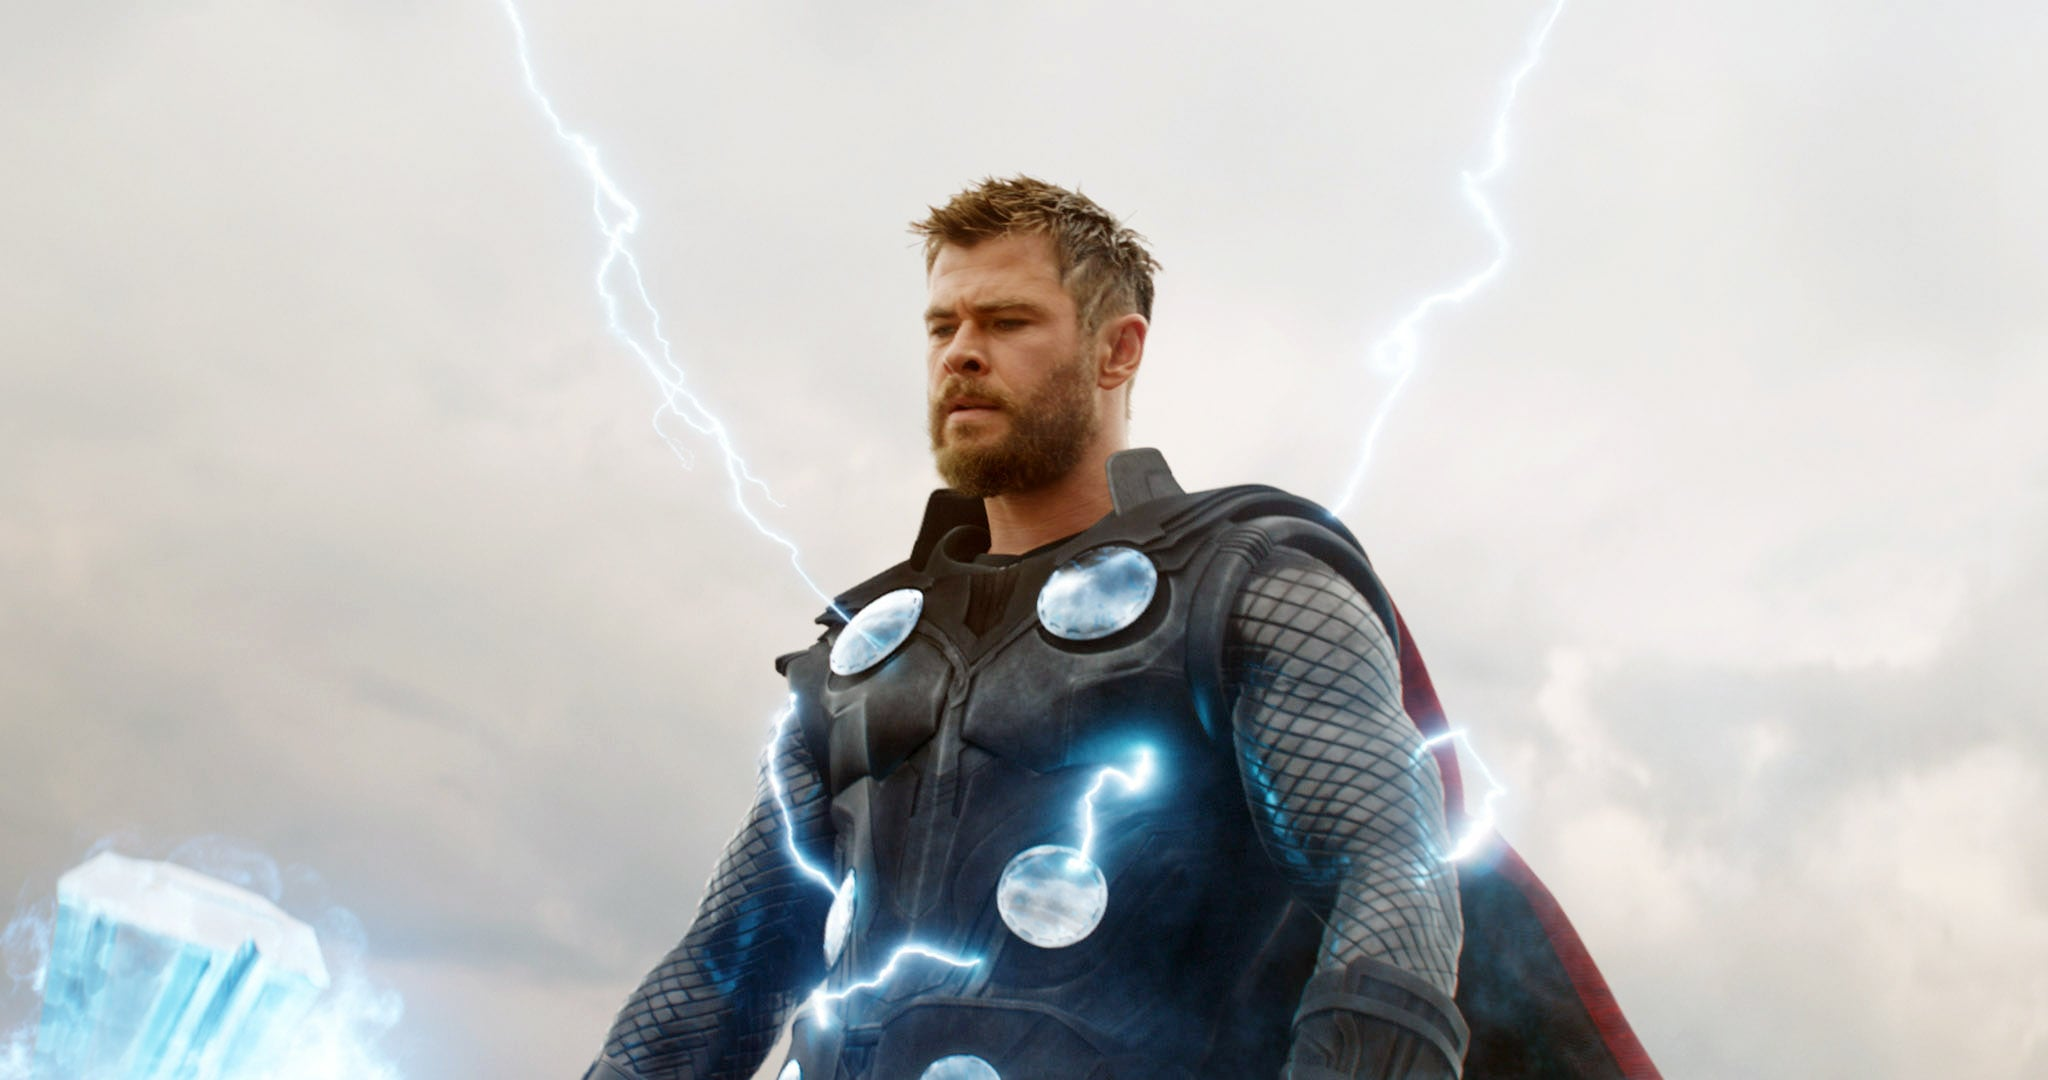 AVENGERS: ENDGAME, (aka AVENGERS 4), Chris Hemsworth as Thor, 2019.  Walt Disney Studios Motion Pictures /  Marvel Studios / courtesy Everett Collection